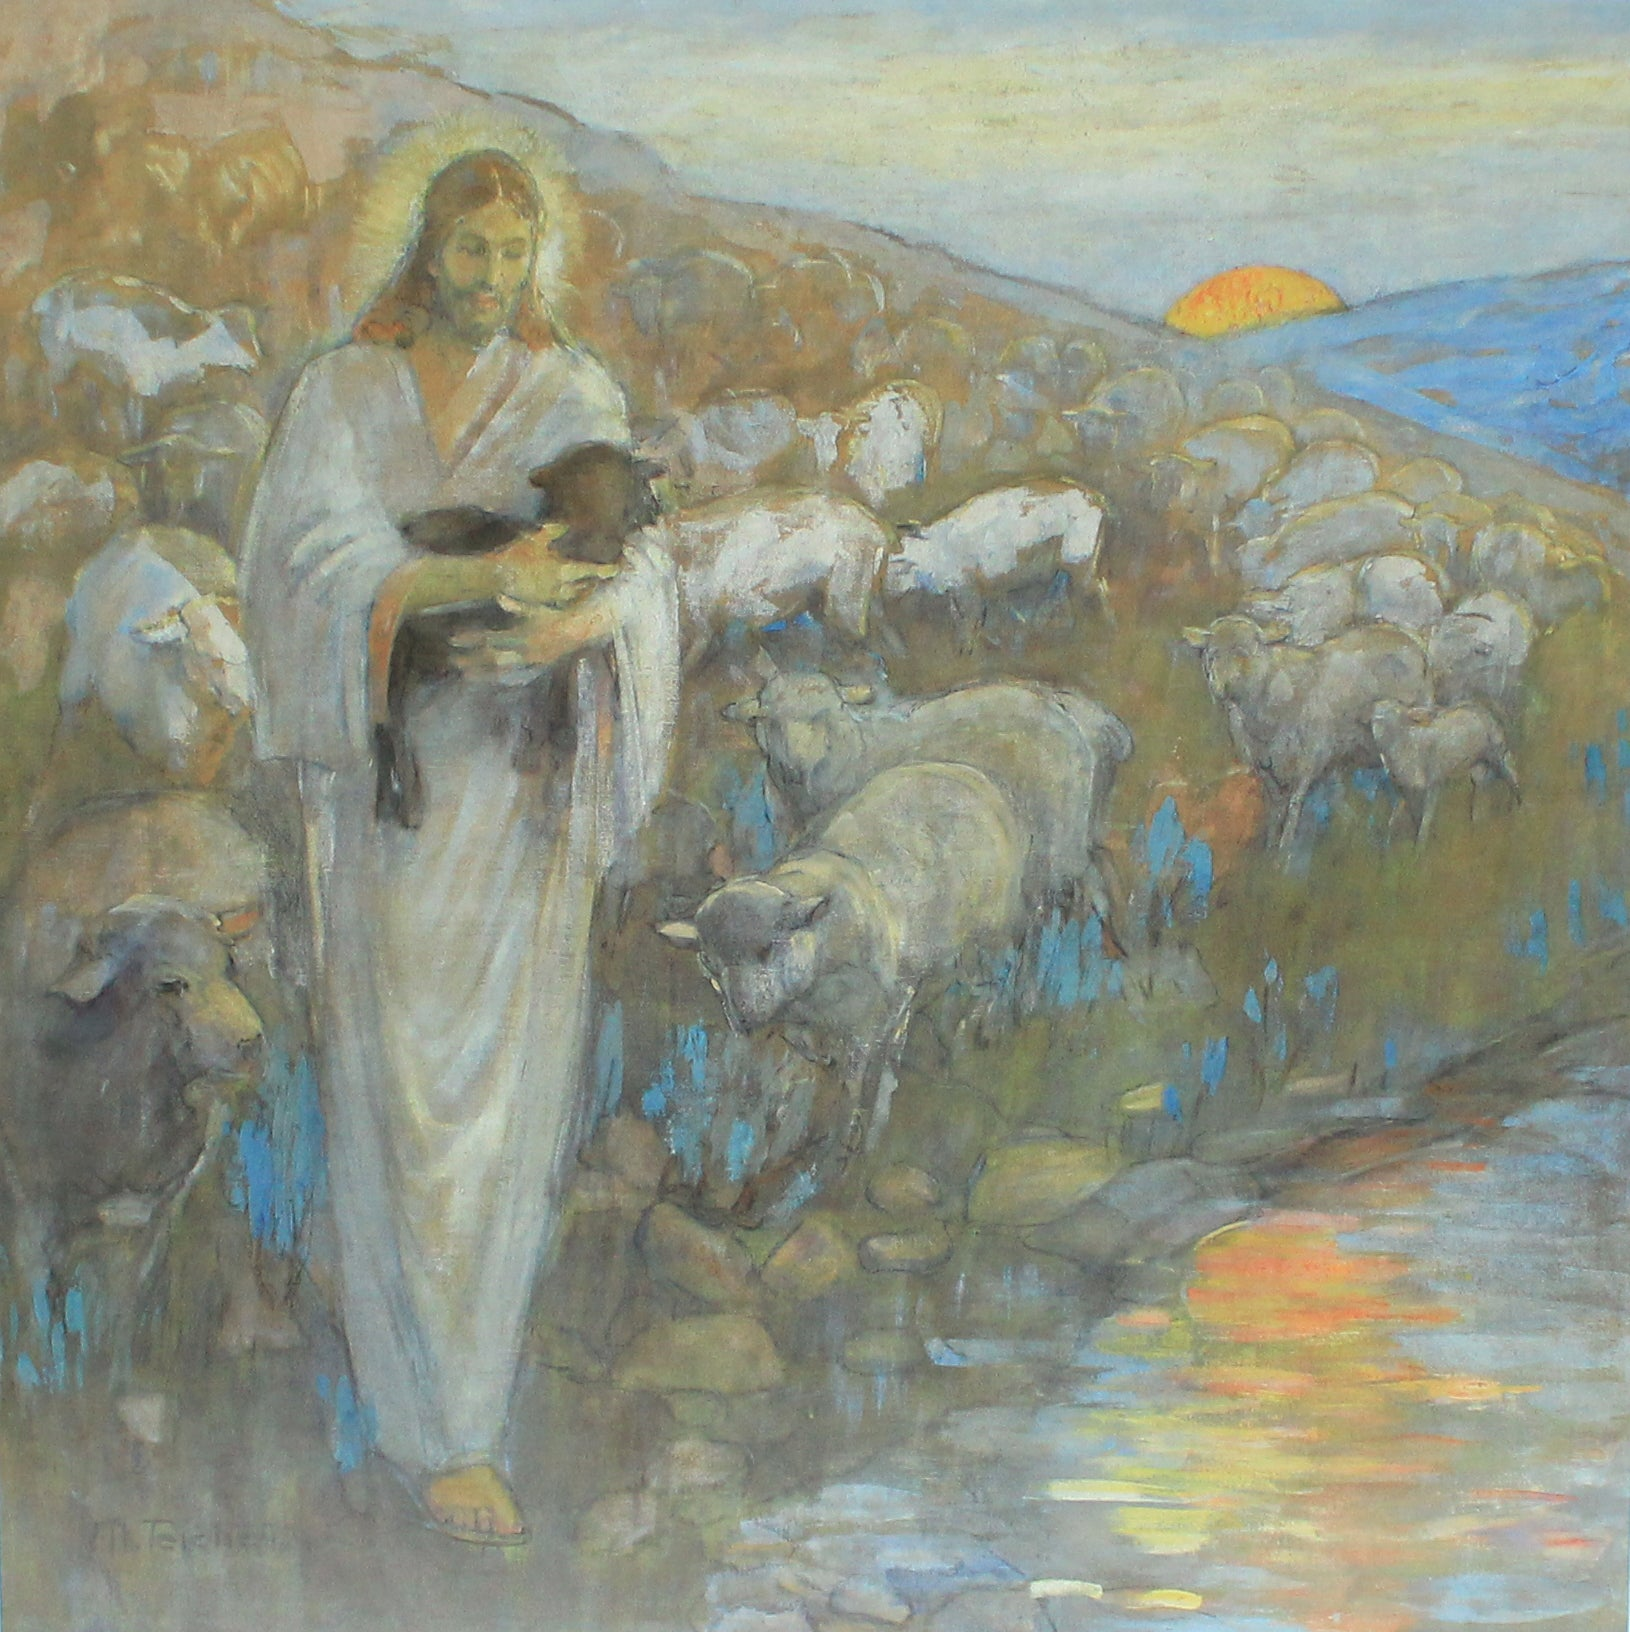 Rescue of the Lost Lamb painting by Minerva Teichert prints for sale at High Desert Dry Goods